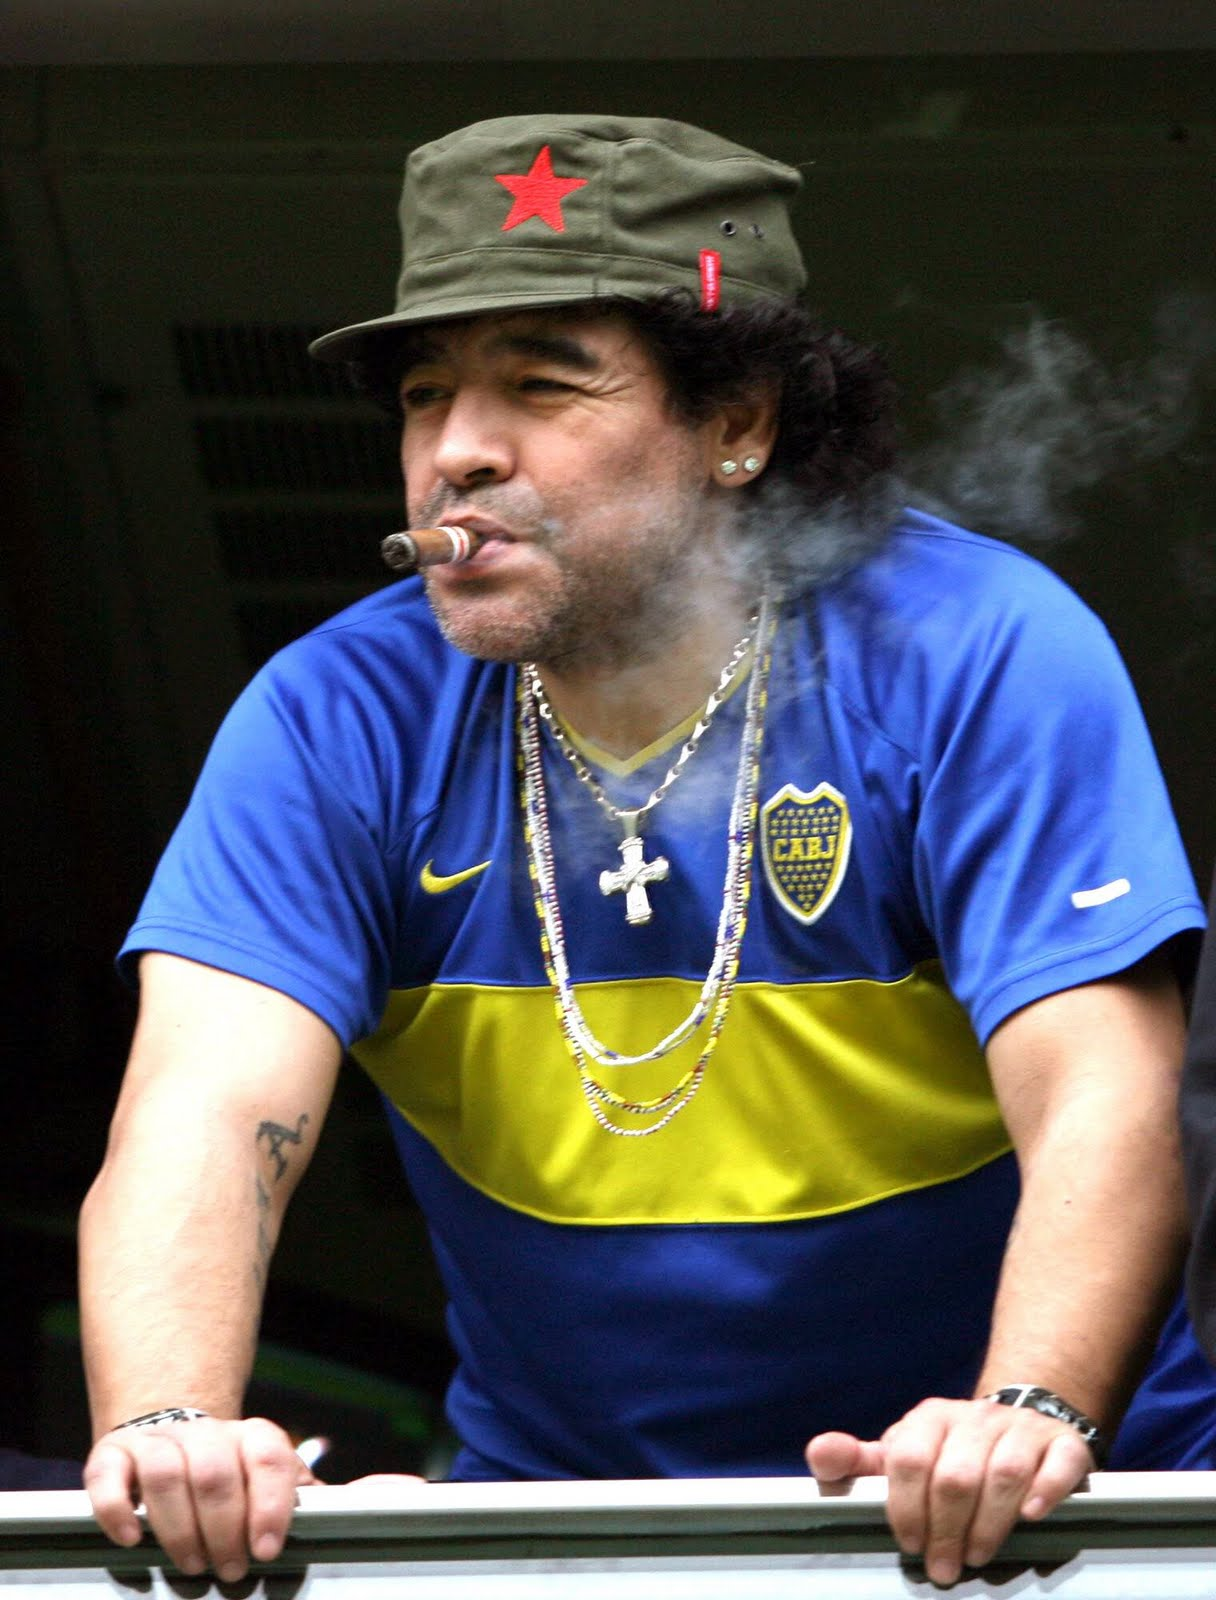 World Famous Football Player Diego Maradona WIki & Photos